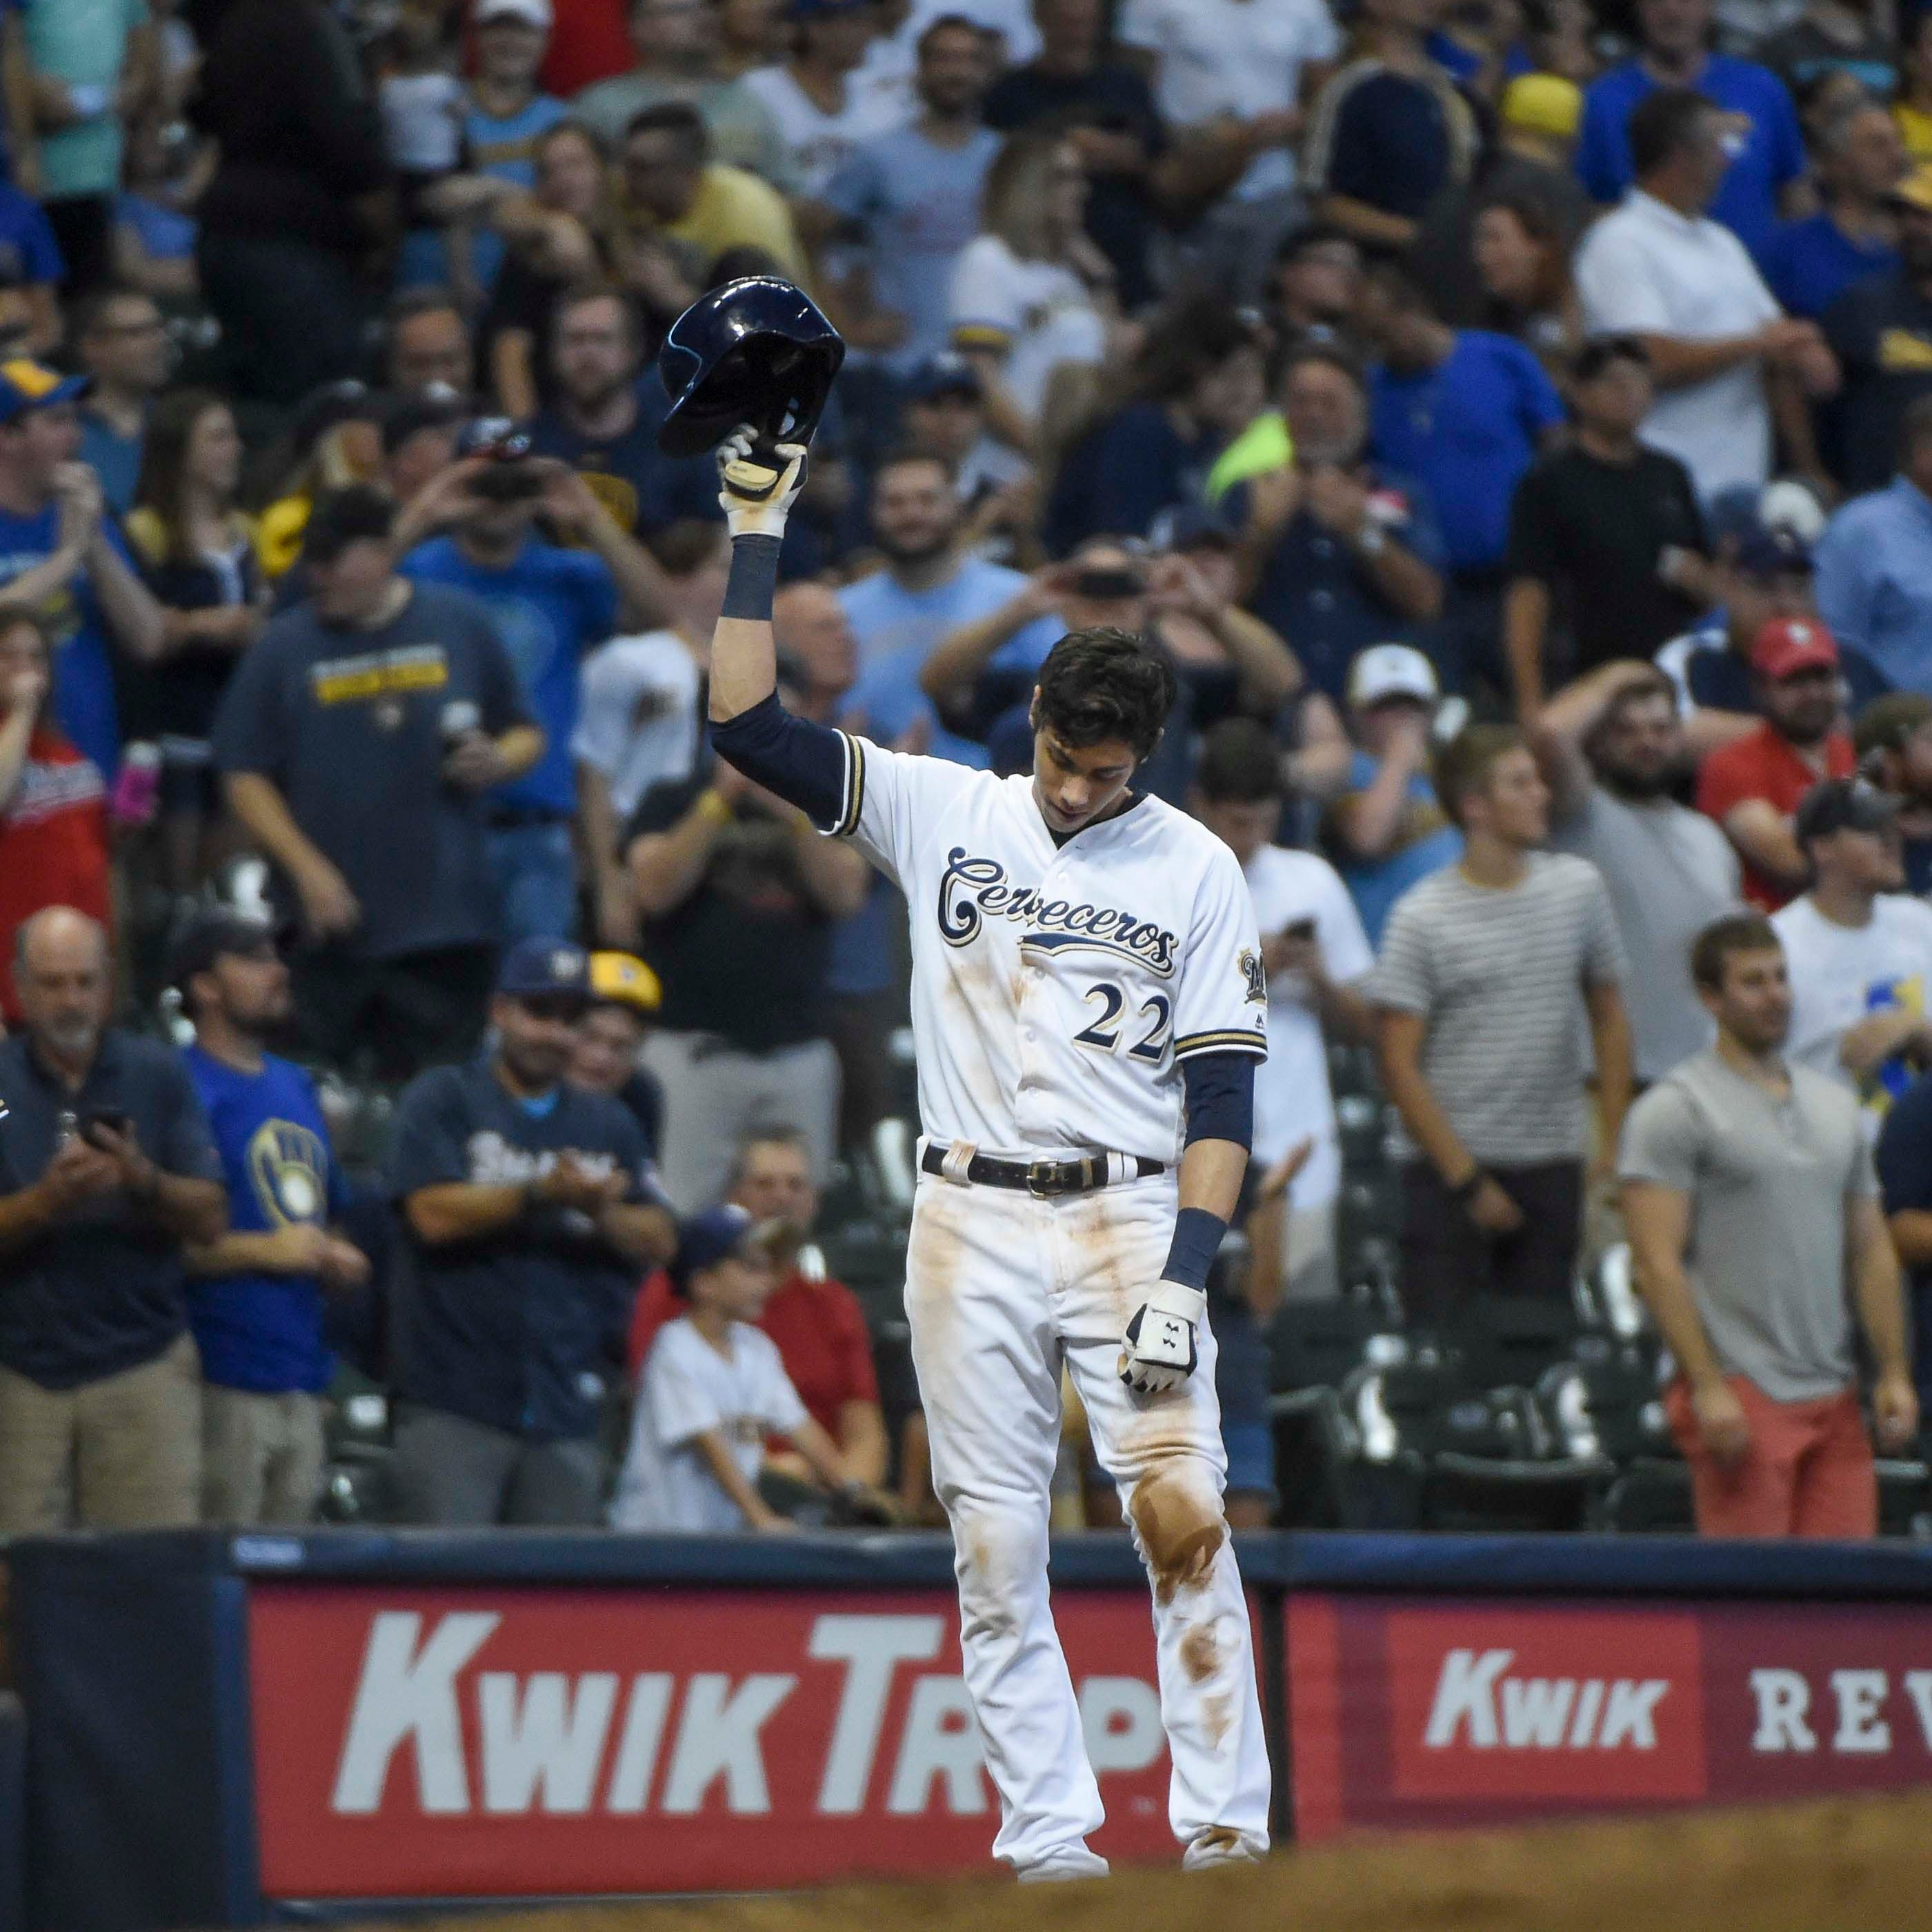 Brewers 8, Reds 0: Christian Yelich hits for cycle for second time against Cincinnati